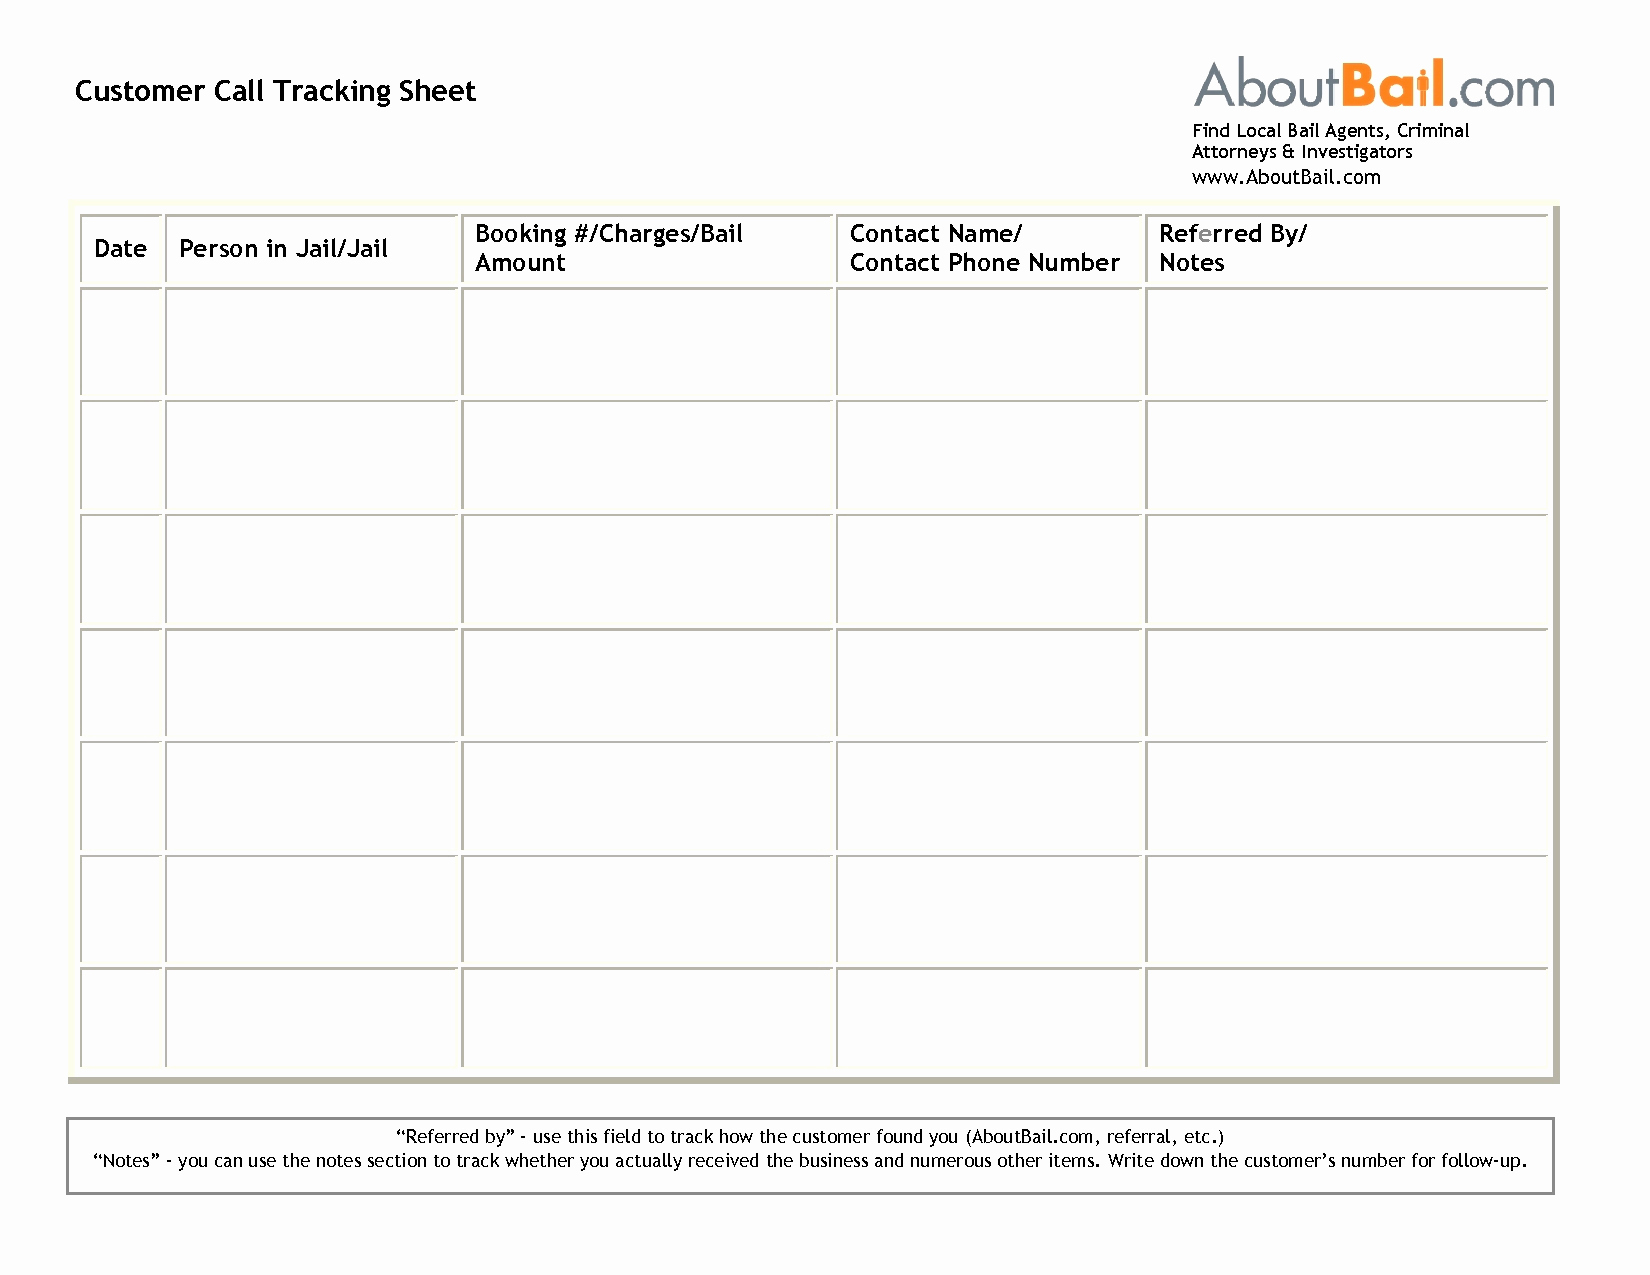 Tracking Sales Calls Spreadsheet Lovely Sales Calls Tracking For Tracking Sales Calls Spreadsheet